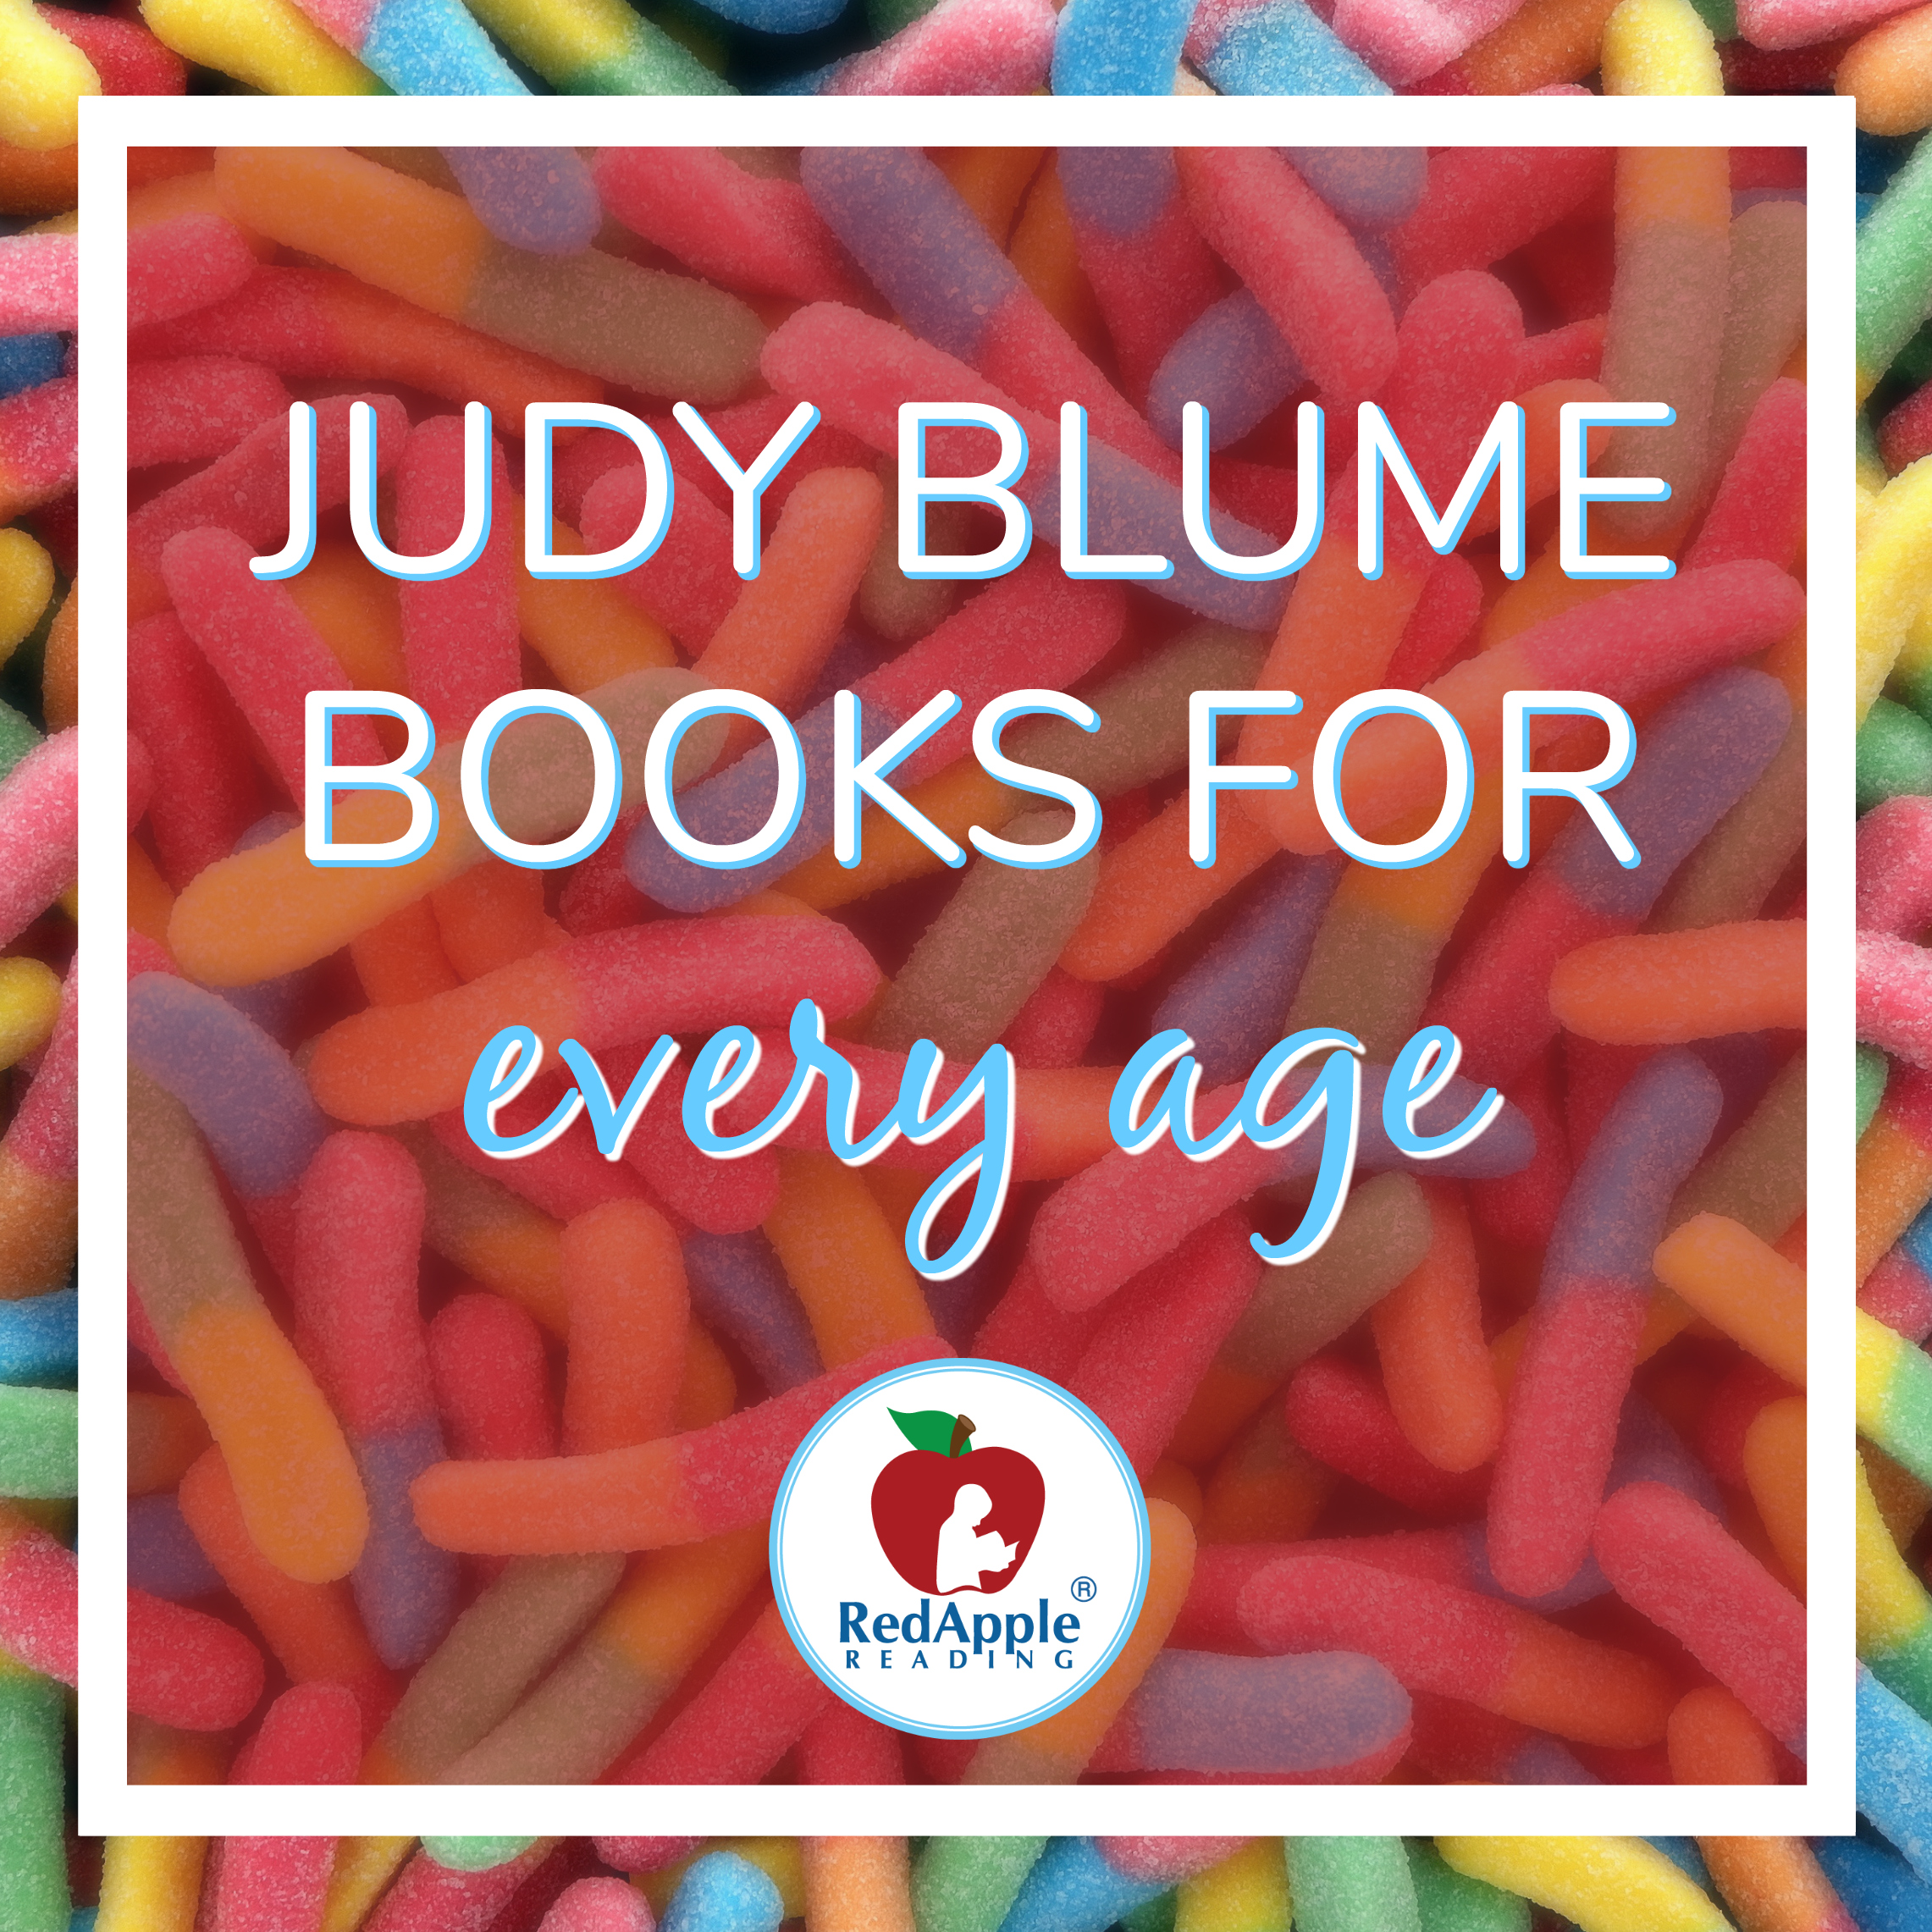 Judy Blume Books for Every Age - Red Apple Reading